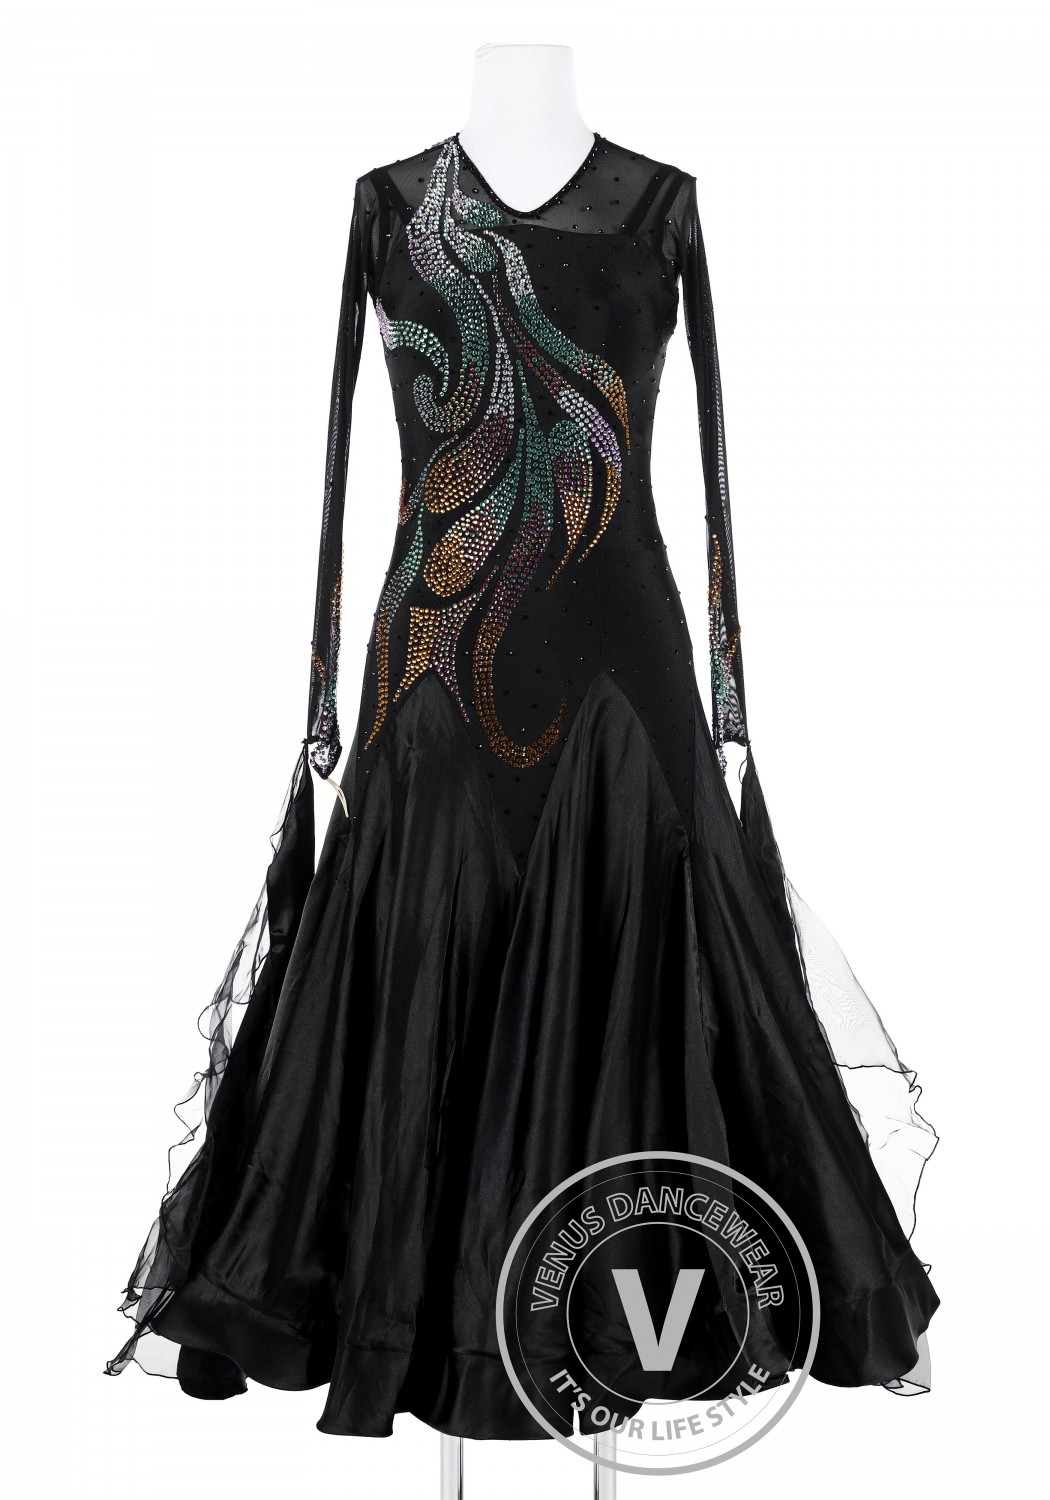 Black Phoenix Tail Standard Foxtrot Waltz Quickstep Dress